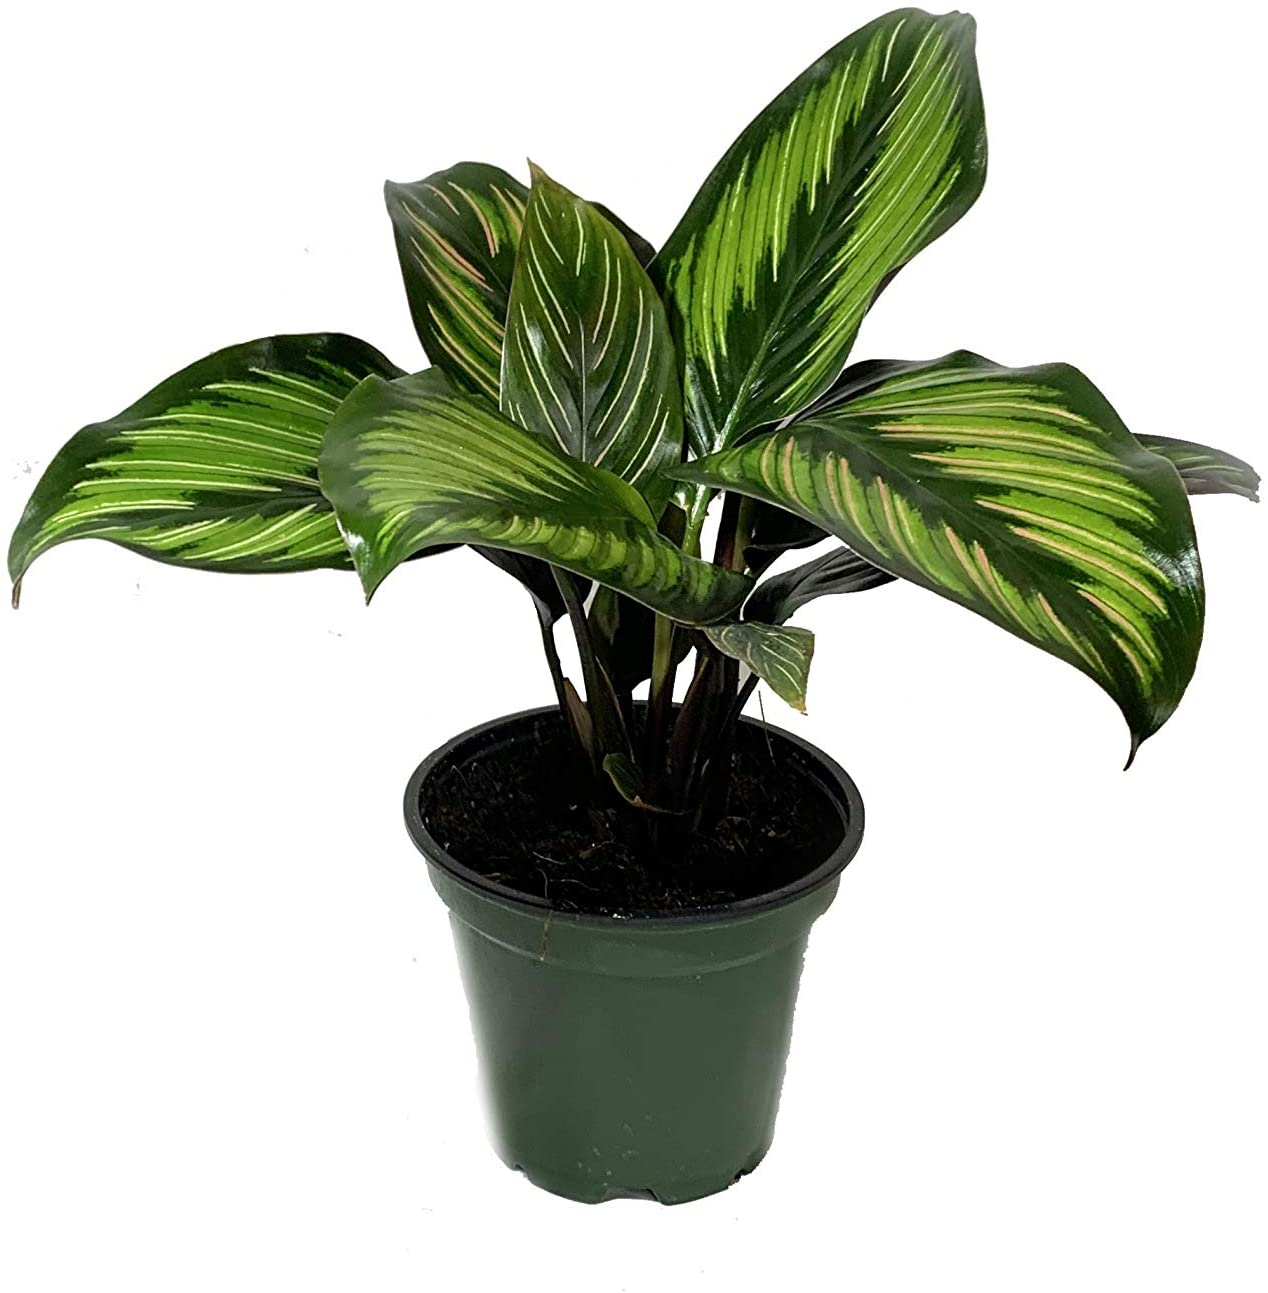 Calathea Beauty Star - 3 Live Plants in 4 Inch Pots - Calathea Ornata Beauty - Beautiful Easy to Grow Air Purifying Indoor Plant